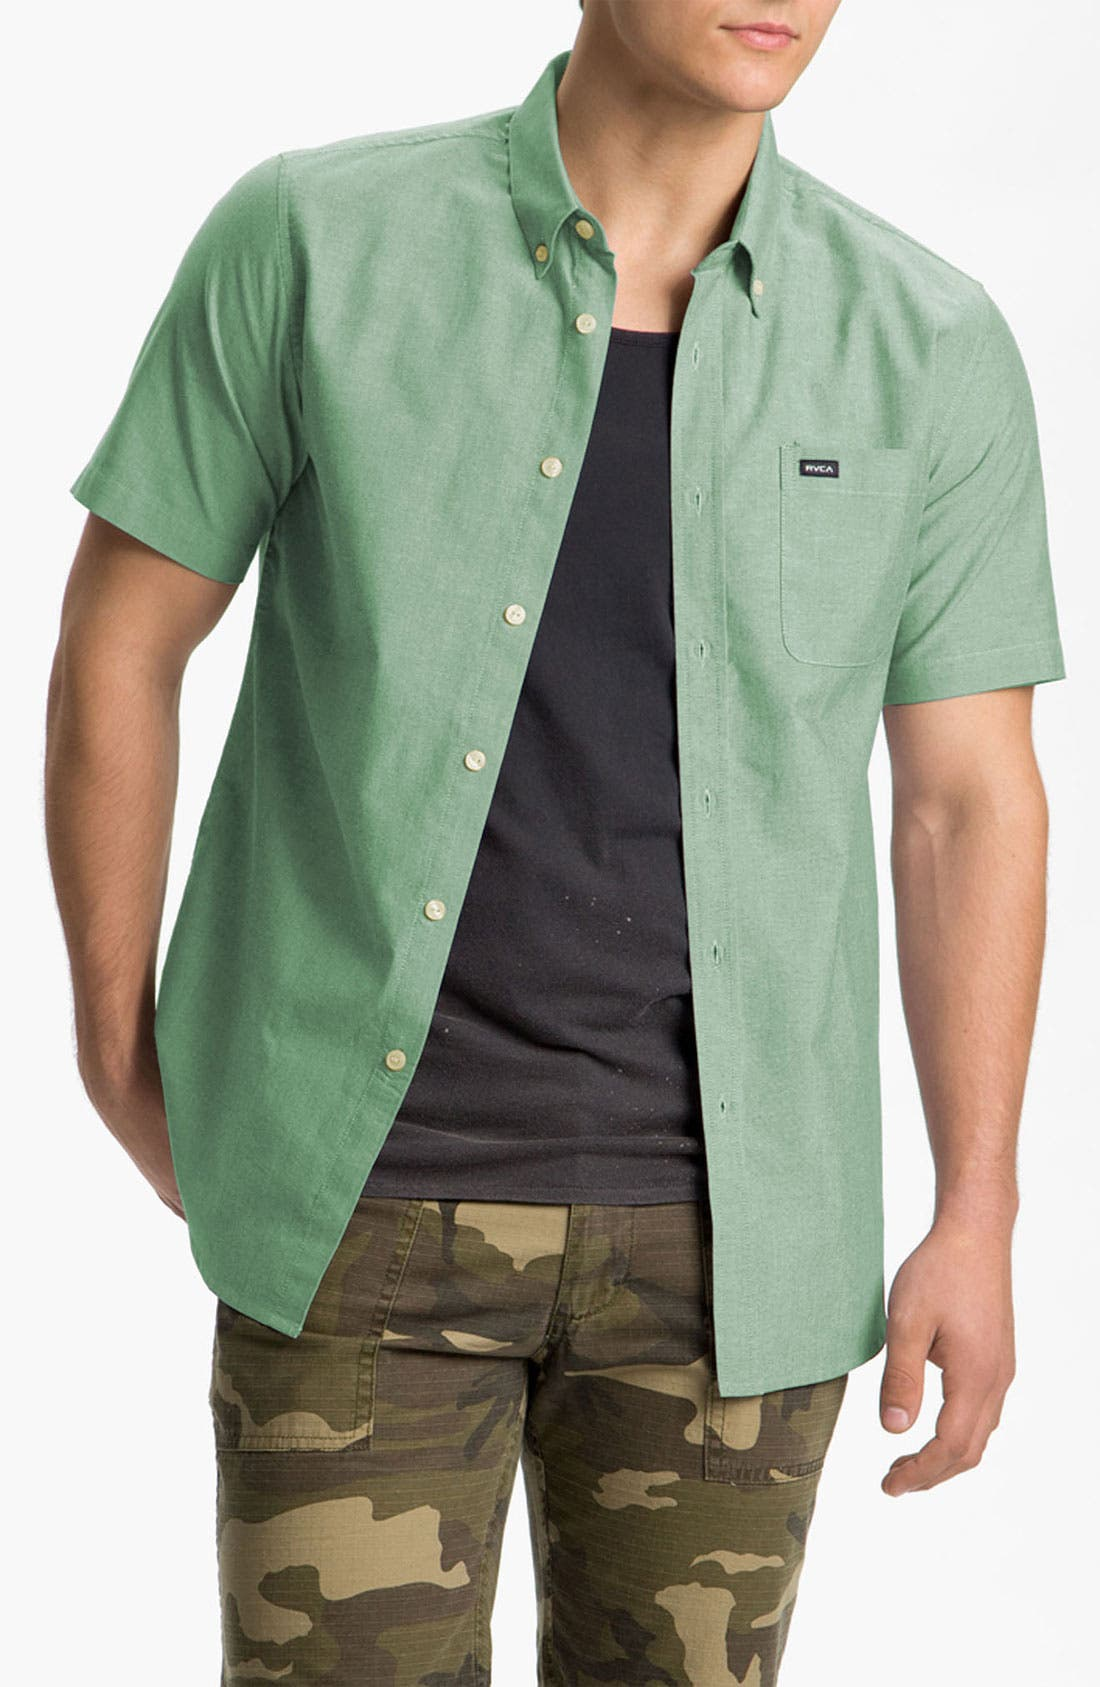 Alternate Image 1 Selected - RVCA 'That'll Do' Oxford Woven Shirt